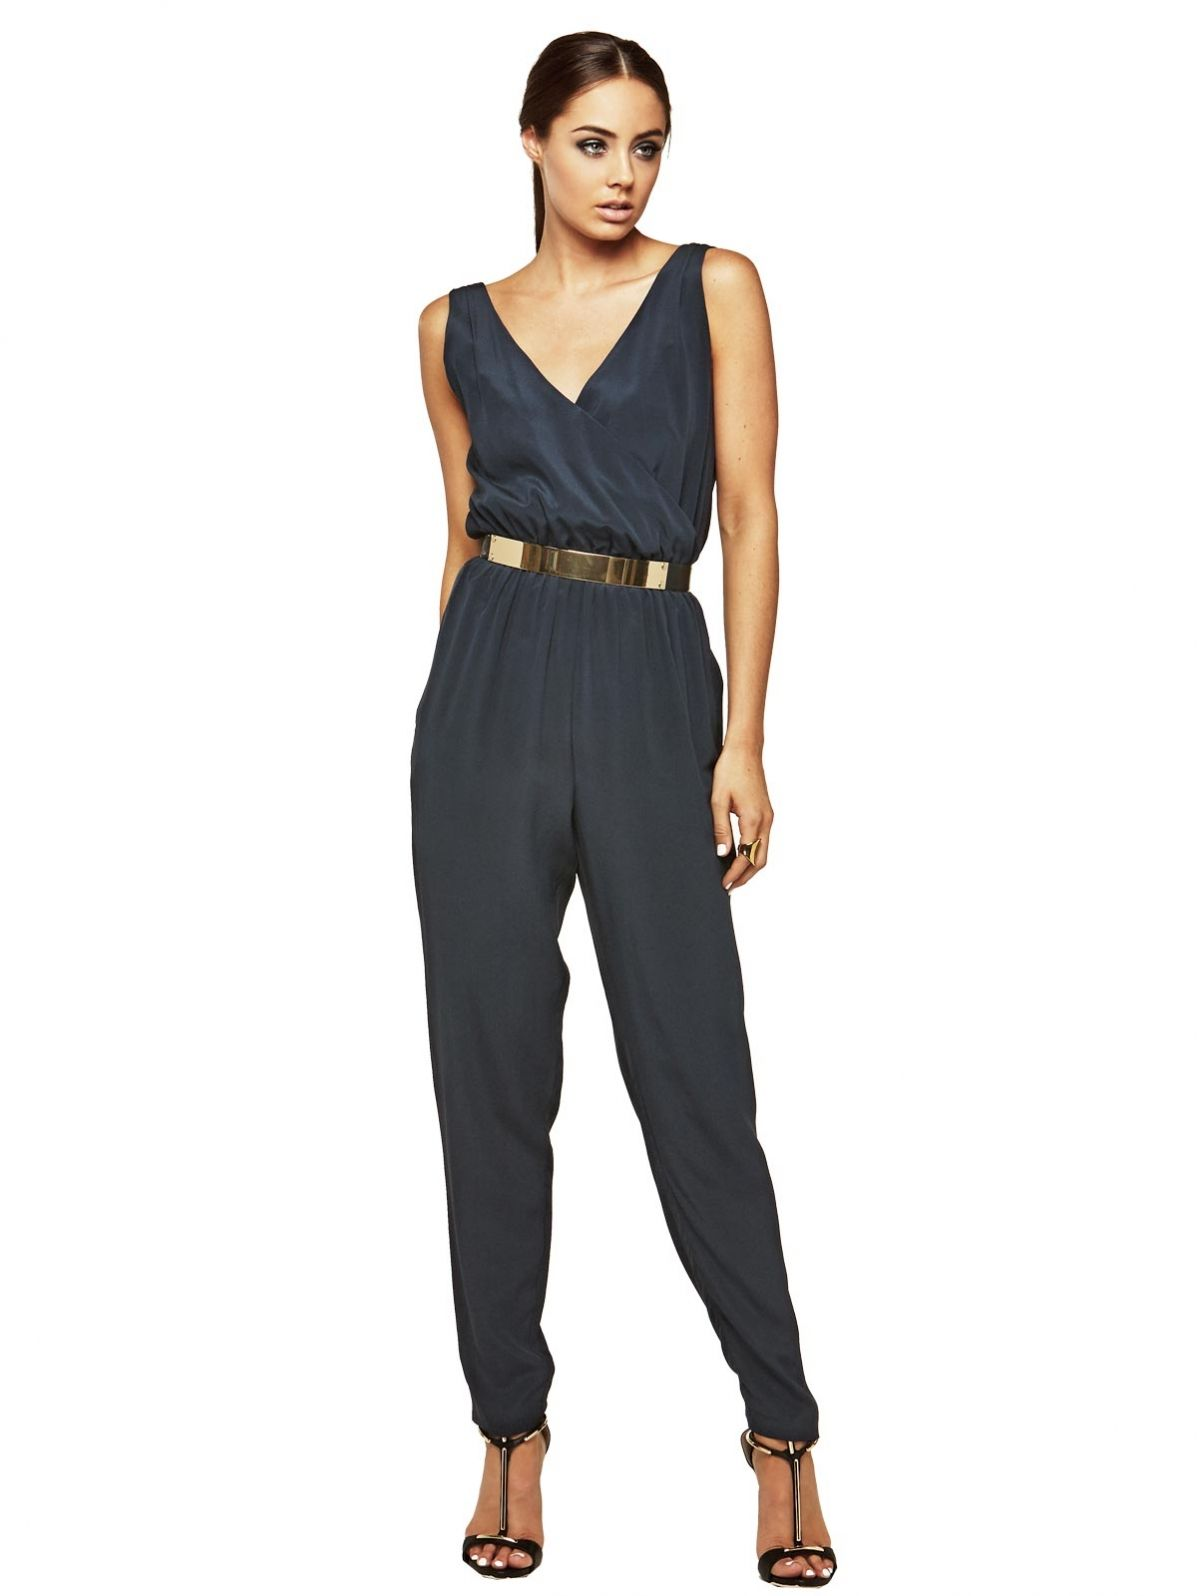 More results for jumpsuit